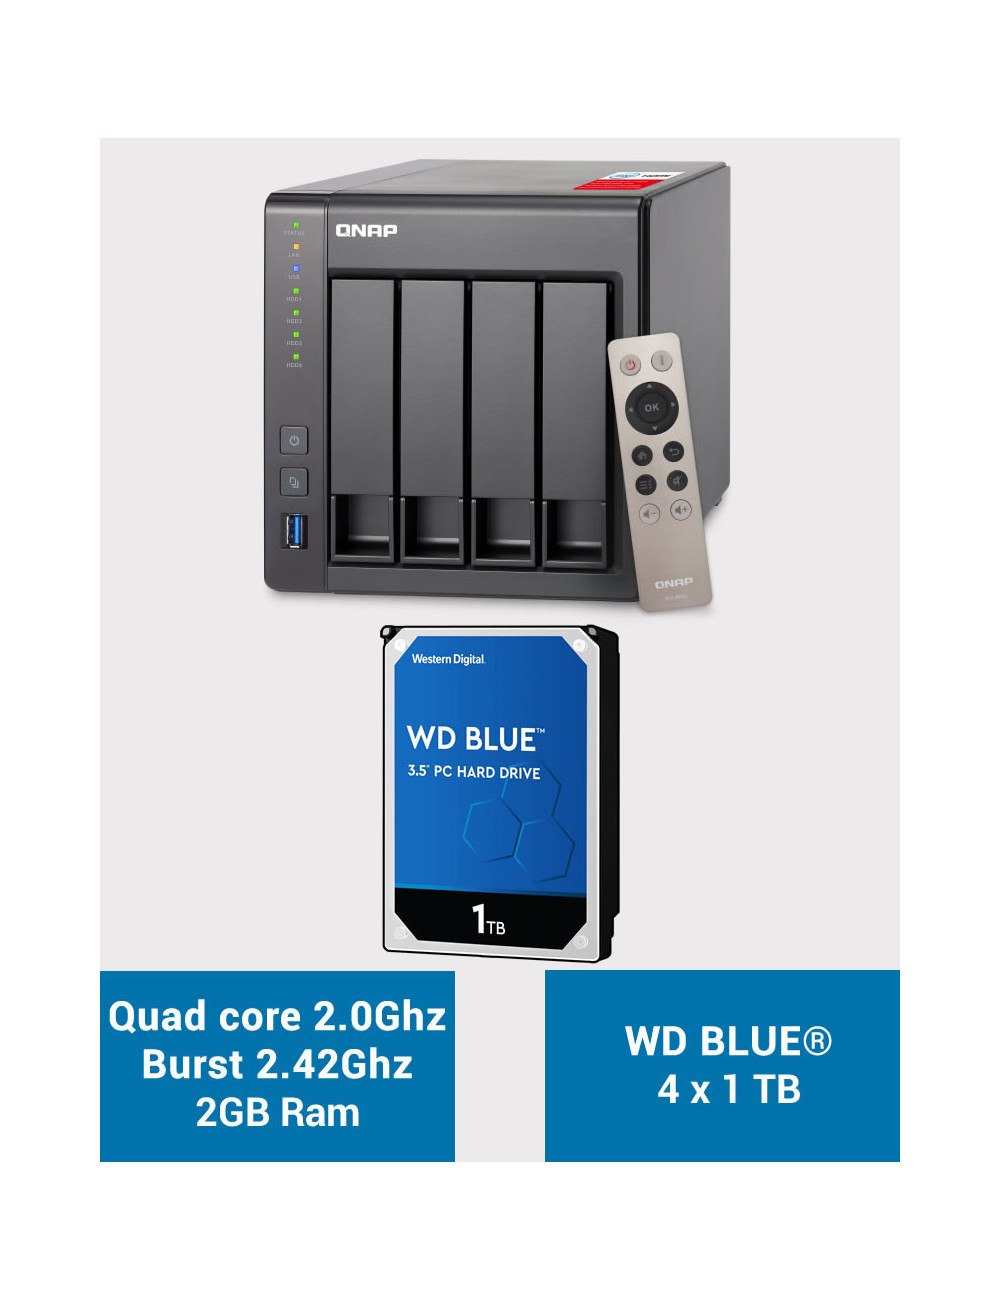 QNAP TS-451+ 2Go Serveur NAS WD BLUE 4 To (4x1To)